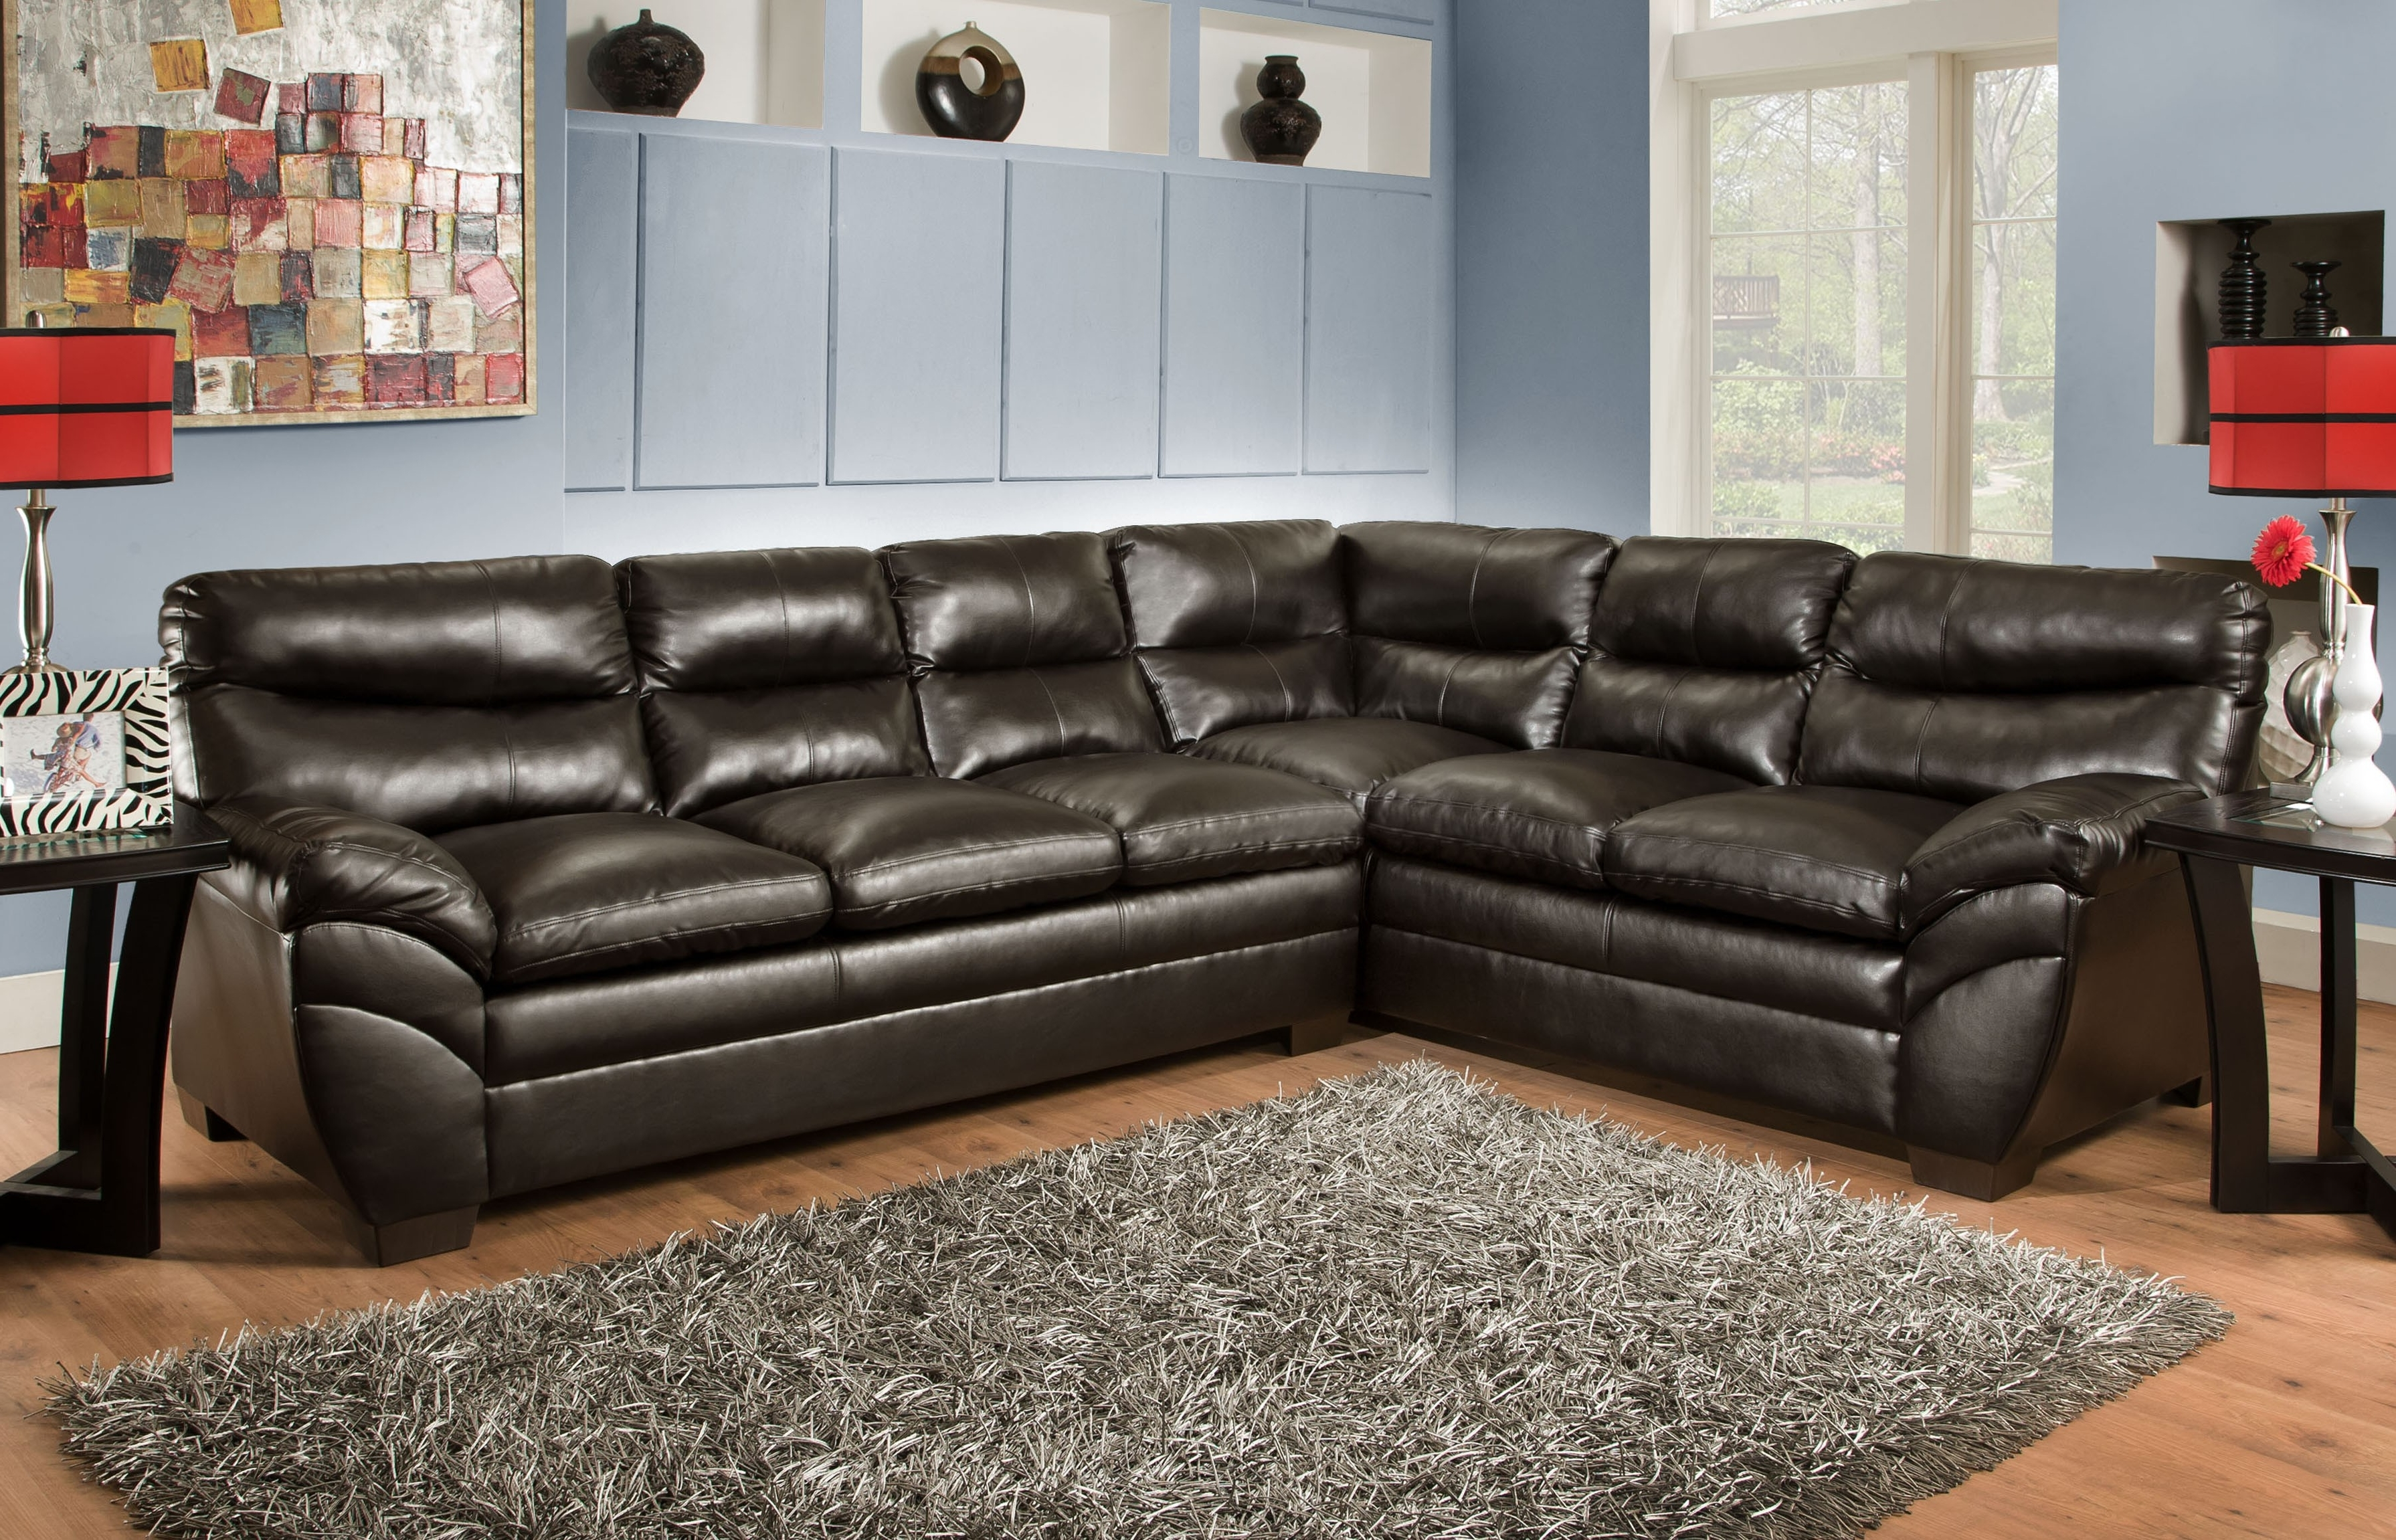 Well Known Orange County Sofas Pertaining To Sectional Sofas Orange County – Hotelsbacau (View 1 of 15)